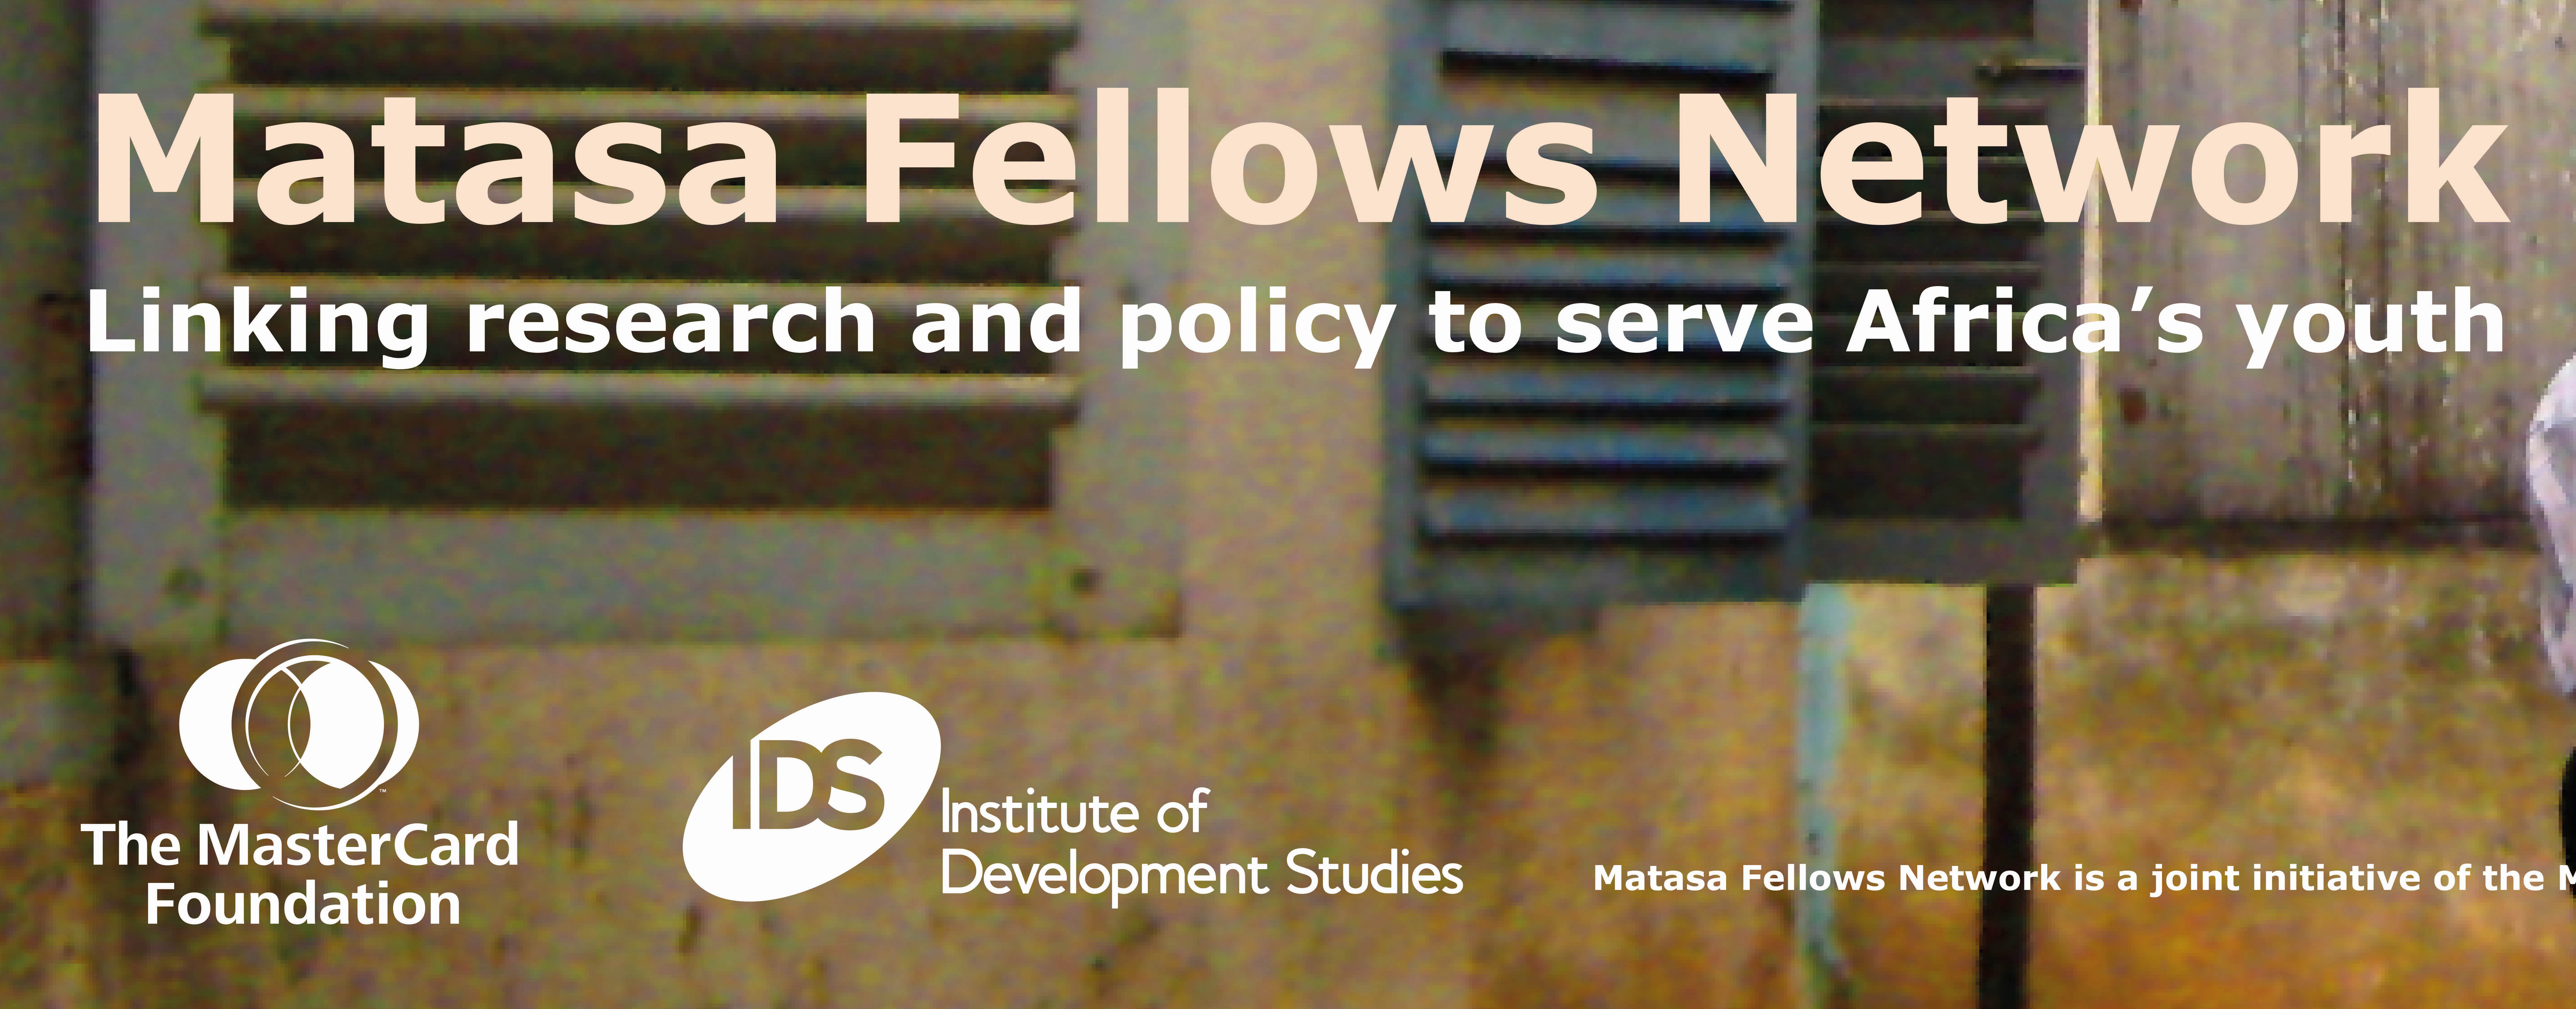 Apply: Matasa Fellows Network for Young African Researchers 2017 (Fully funded to the UK + £3,000)